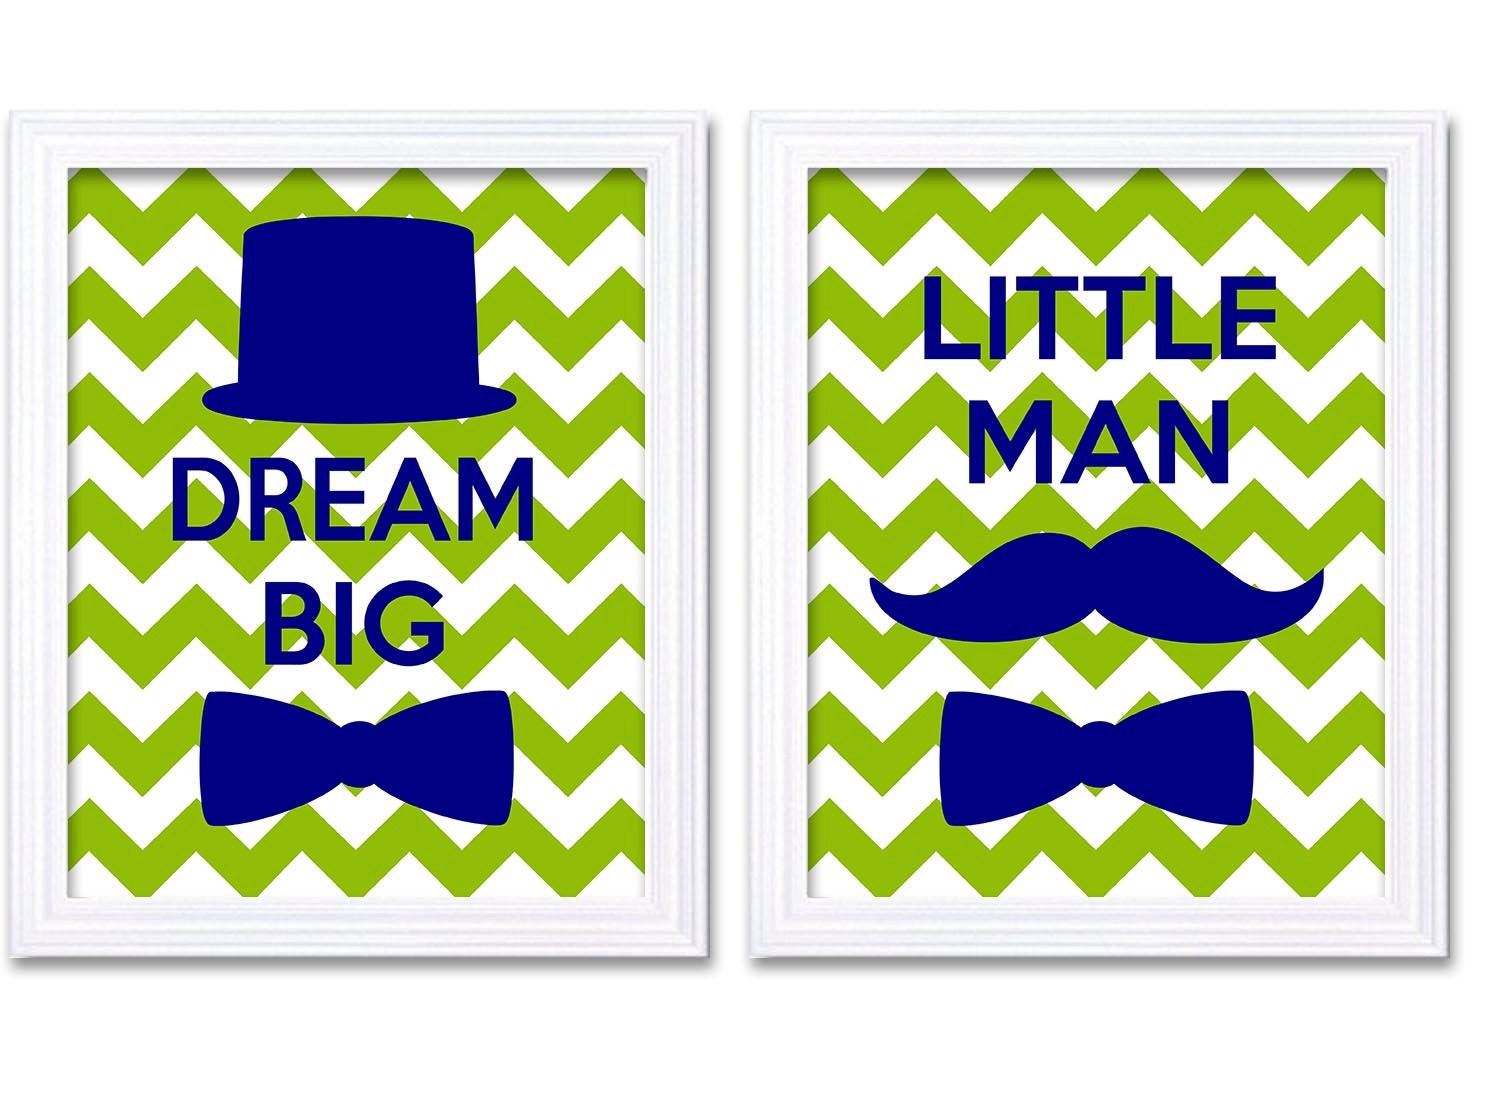 Dream Big Little Man Nursery Art Lime Green Navy Blue Nursery Print Set of 2 Tophat Bowtie Child Bab